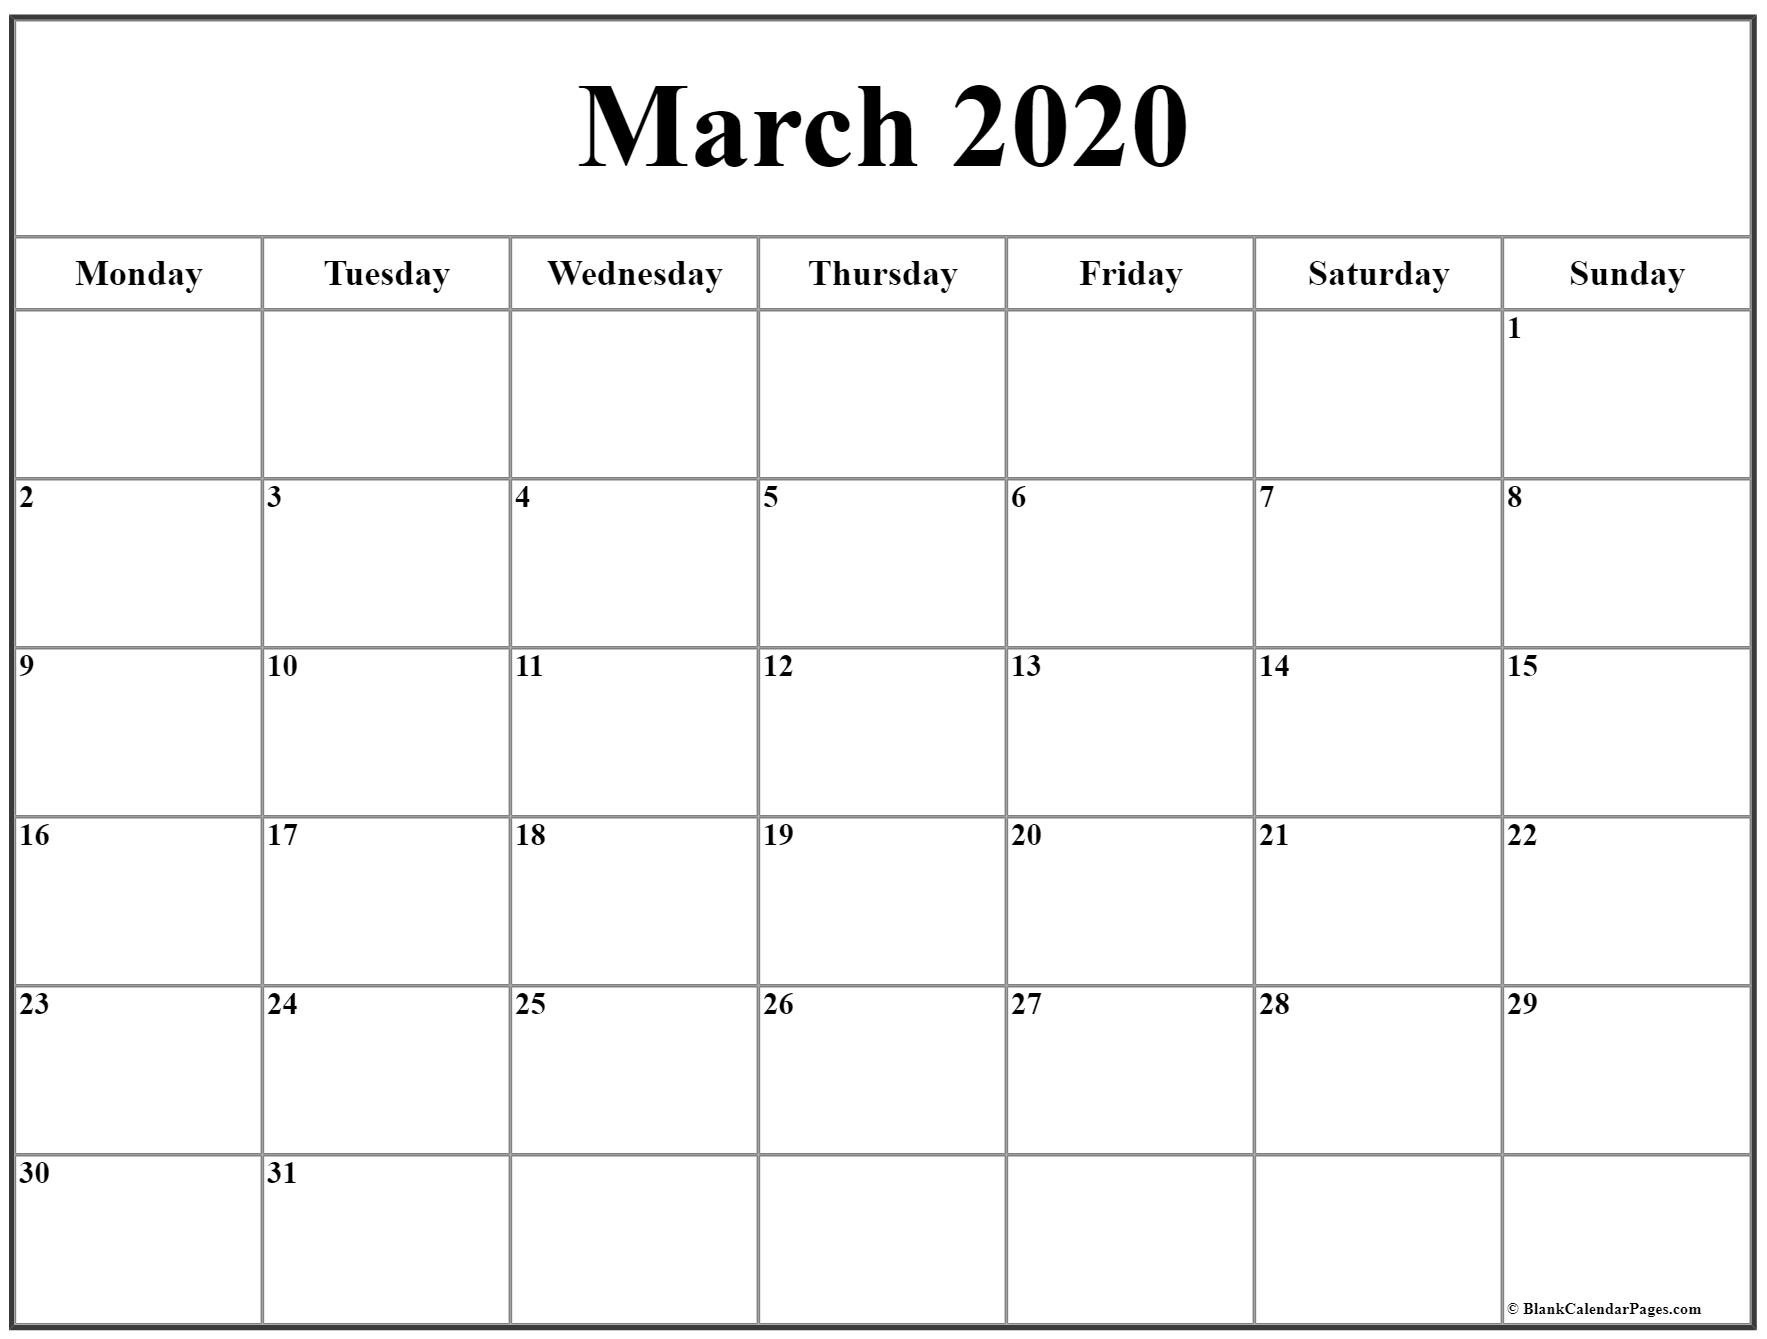 March 2020 Monday Calendar | Monday To Sunday Calendar Saturday To Friday